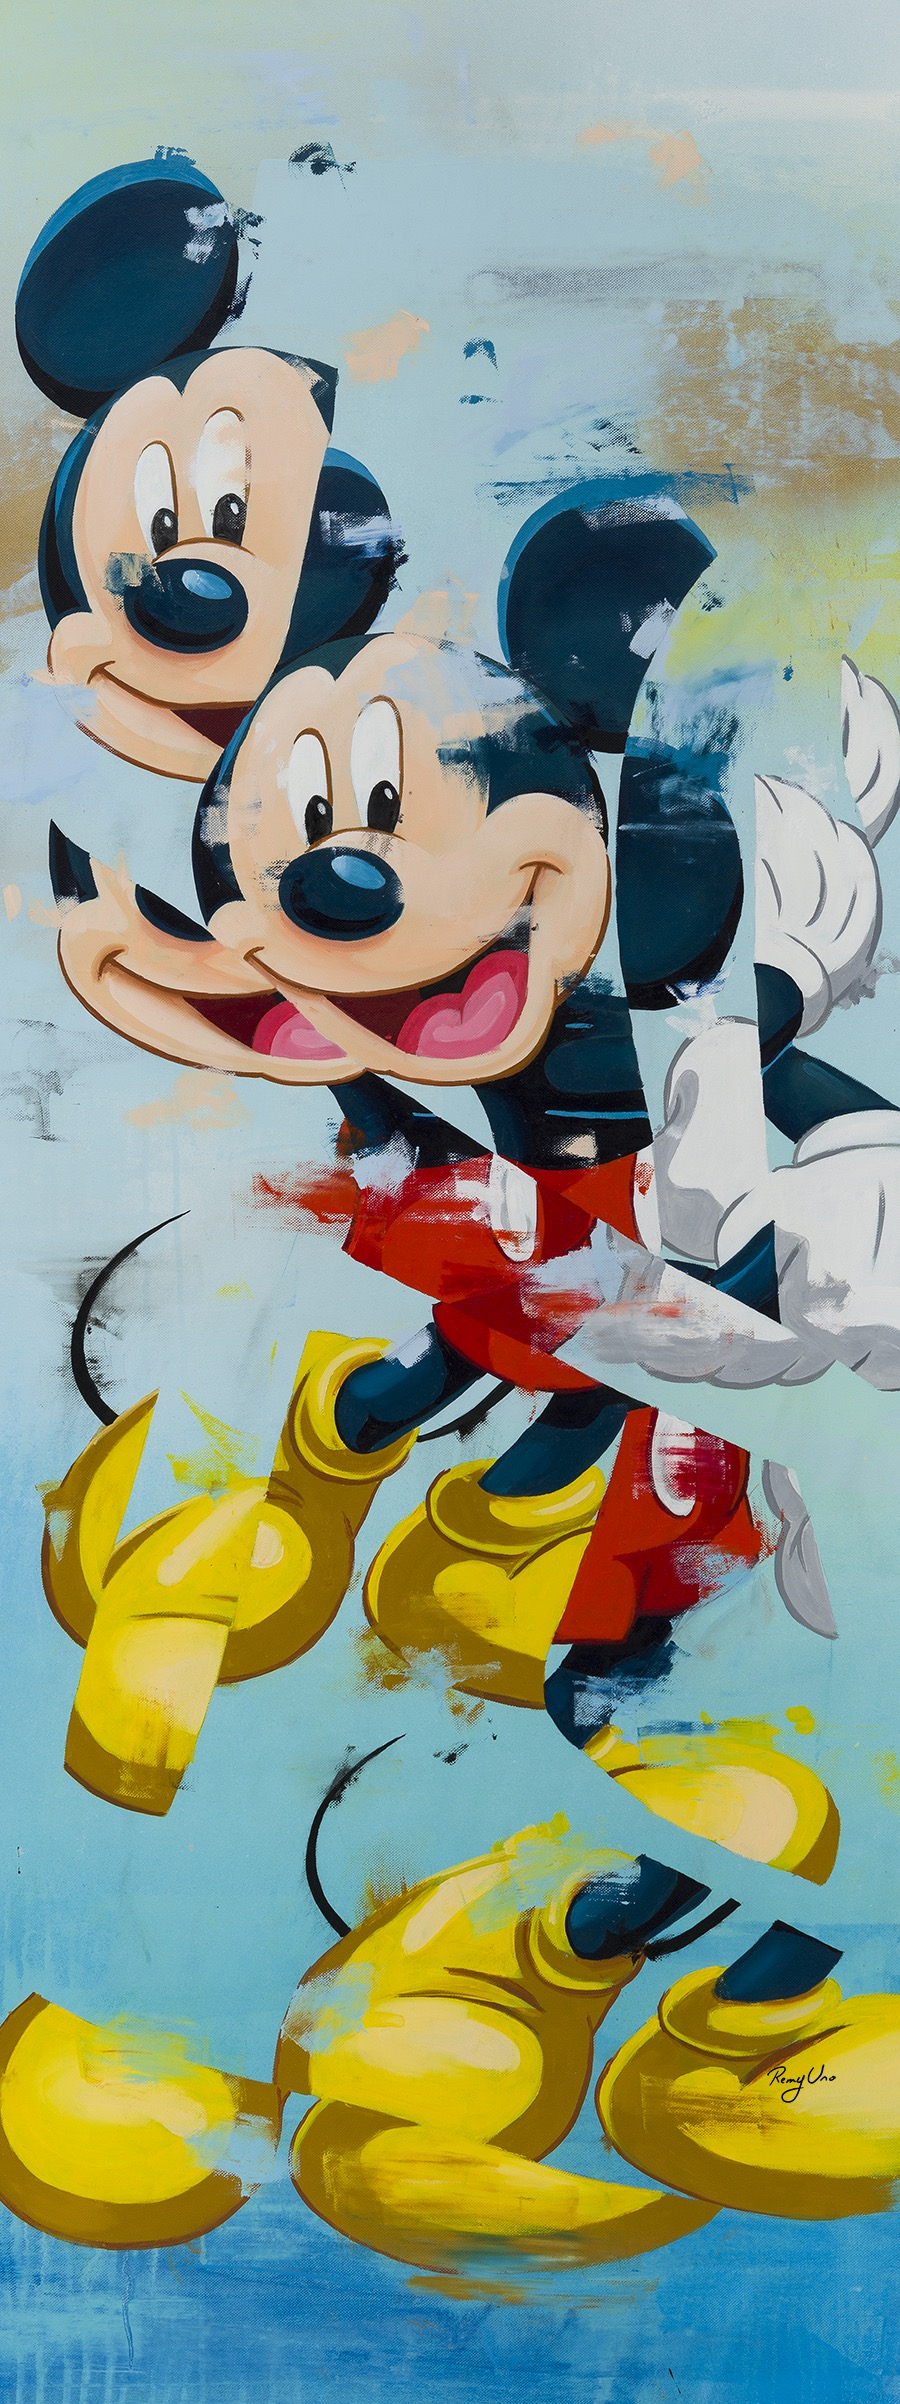 mickey90_hidden_marseille_fubiz.jpg